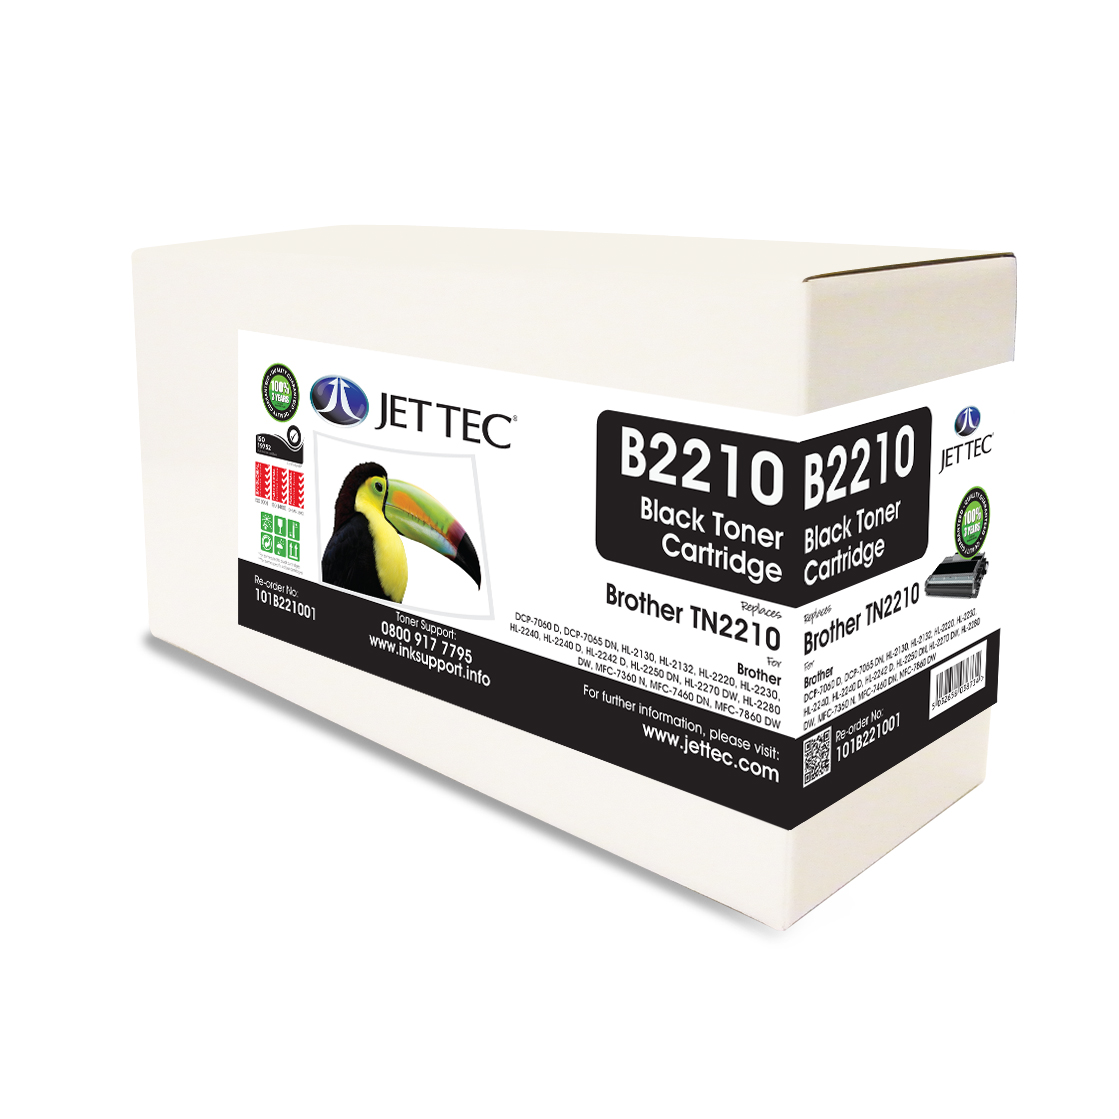 Jet Tec B2210 Brother TN2210 laser toner printer cartridges